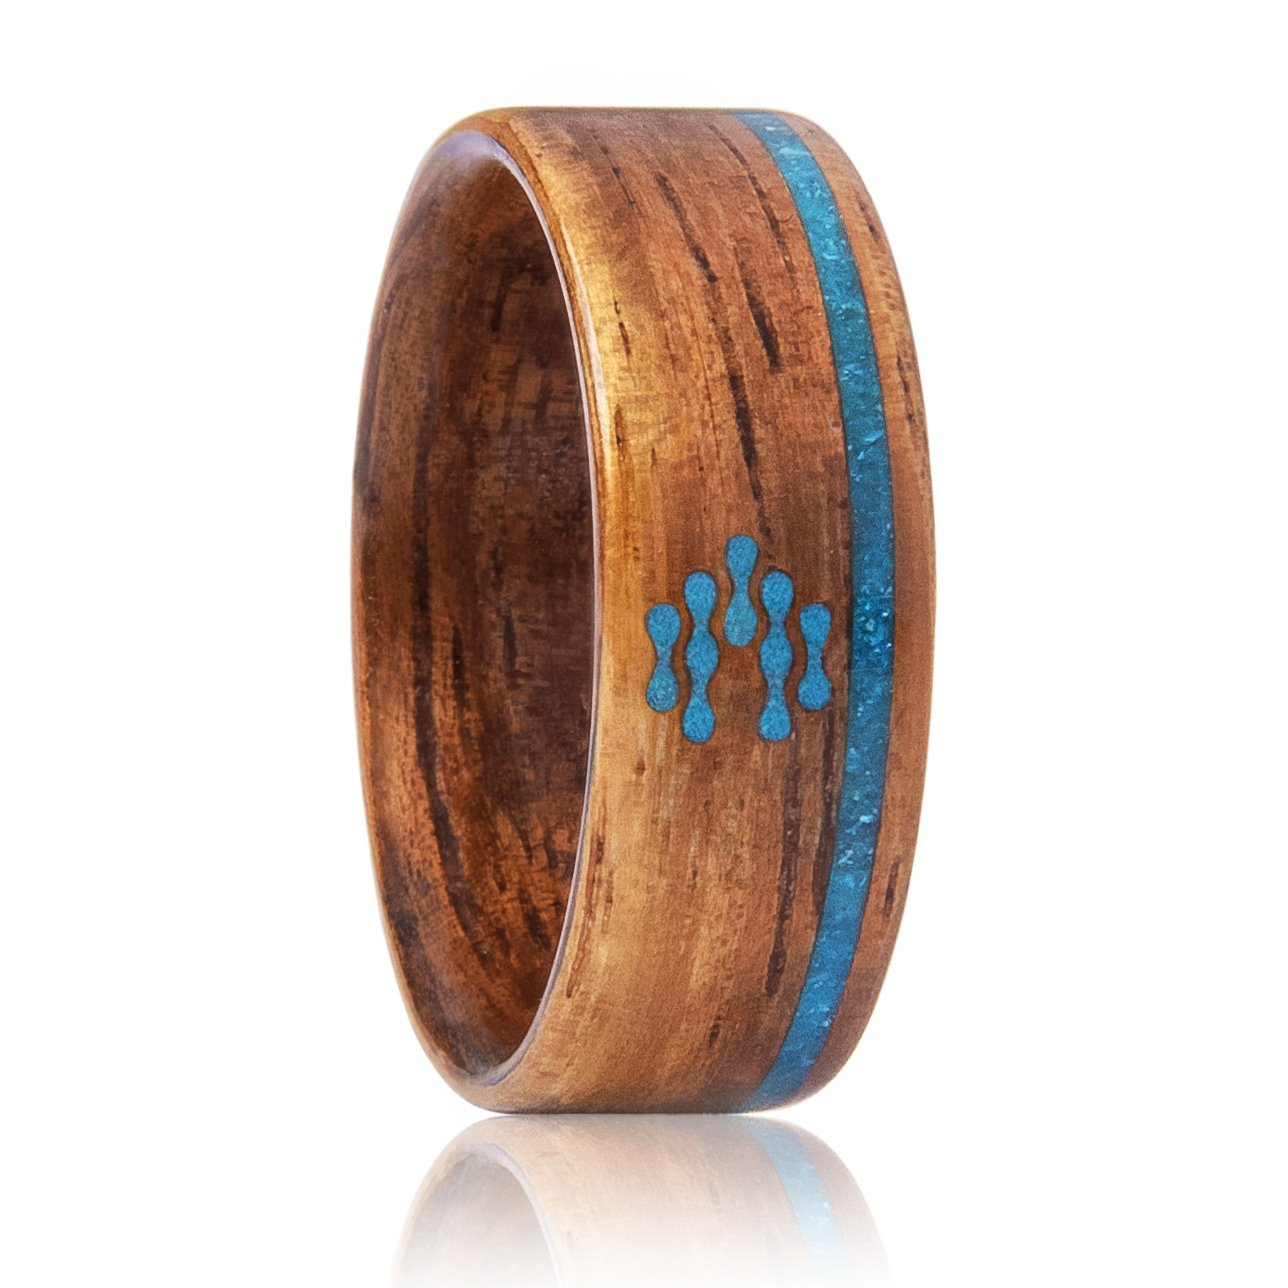 CNICK Smart NFC RFID Ring: Door Access, Manage NFC Android Devices and APPs, First Wooden Smart Ring for Men and Women by CNICK